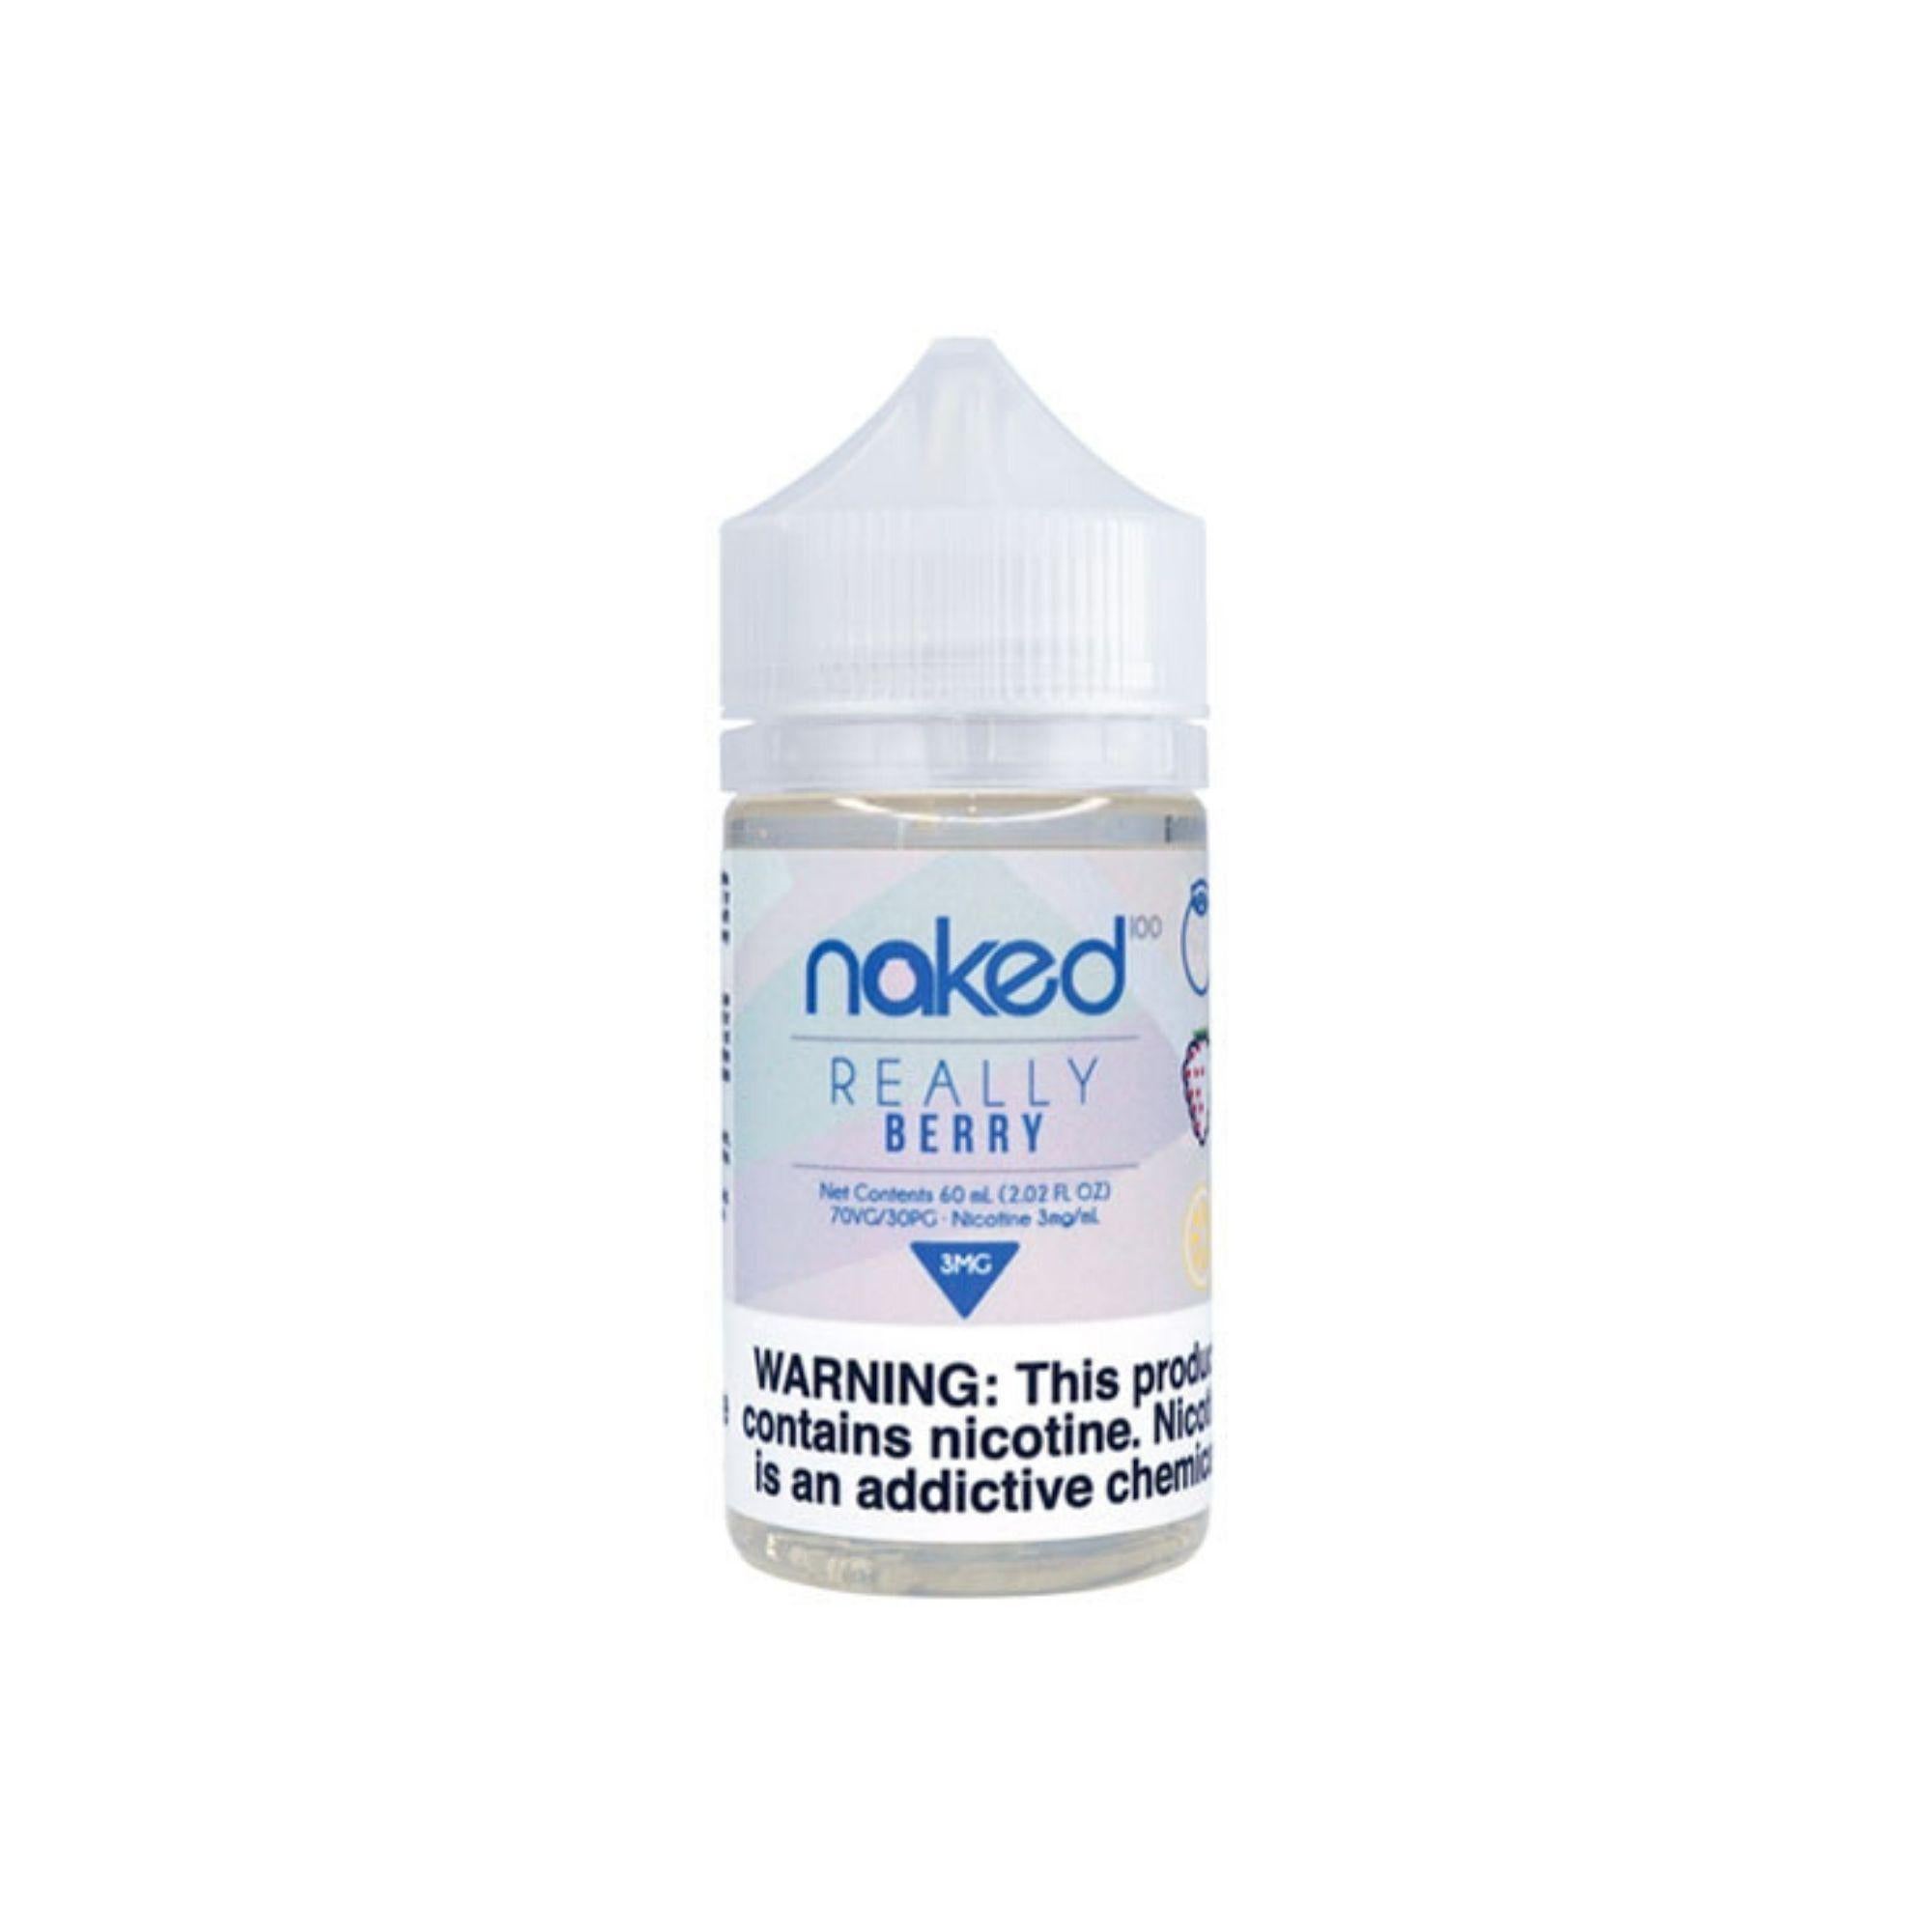 Really Berry - Naked 100 (60ML)